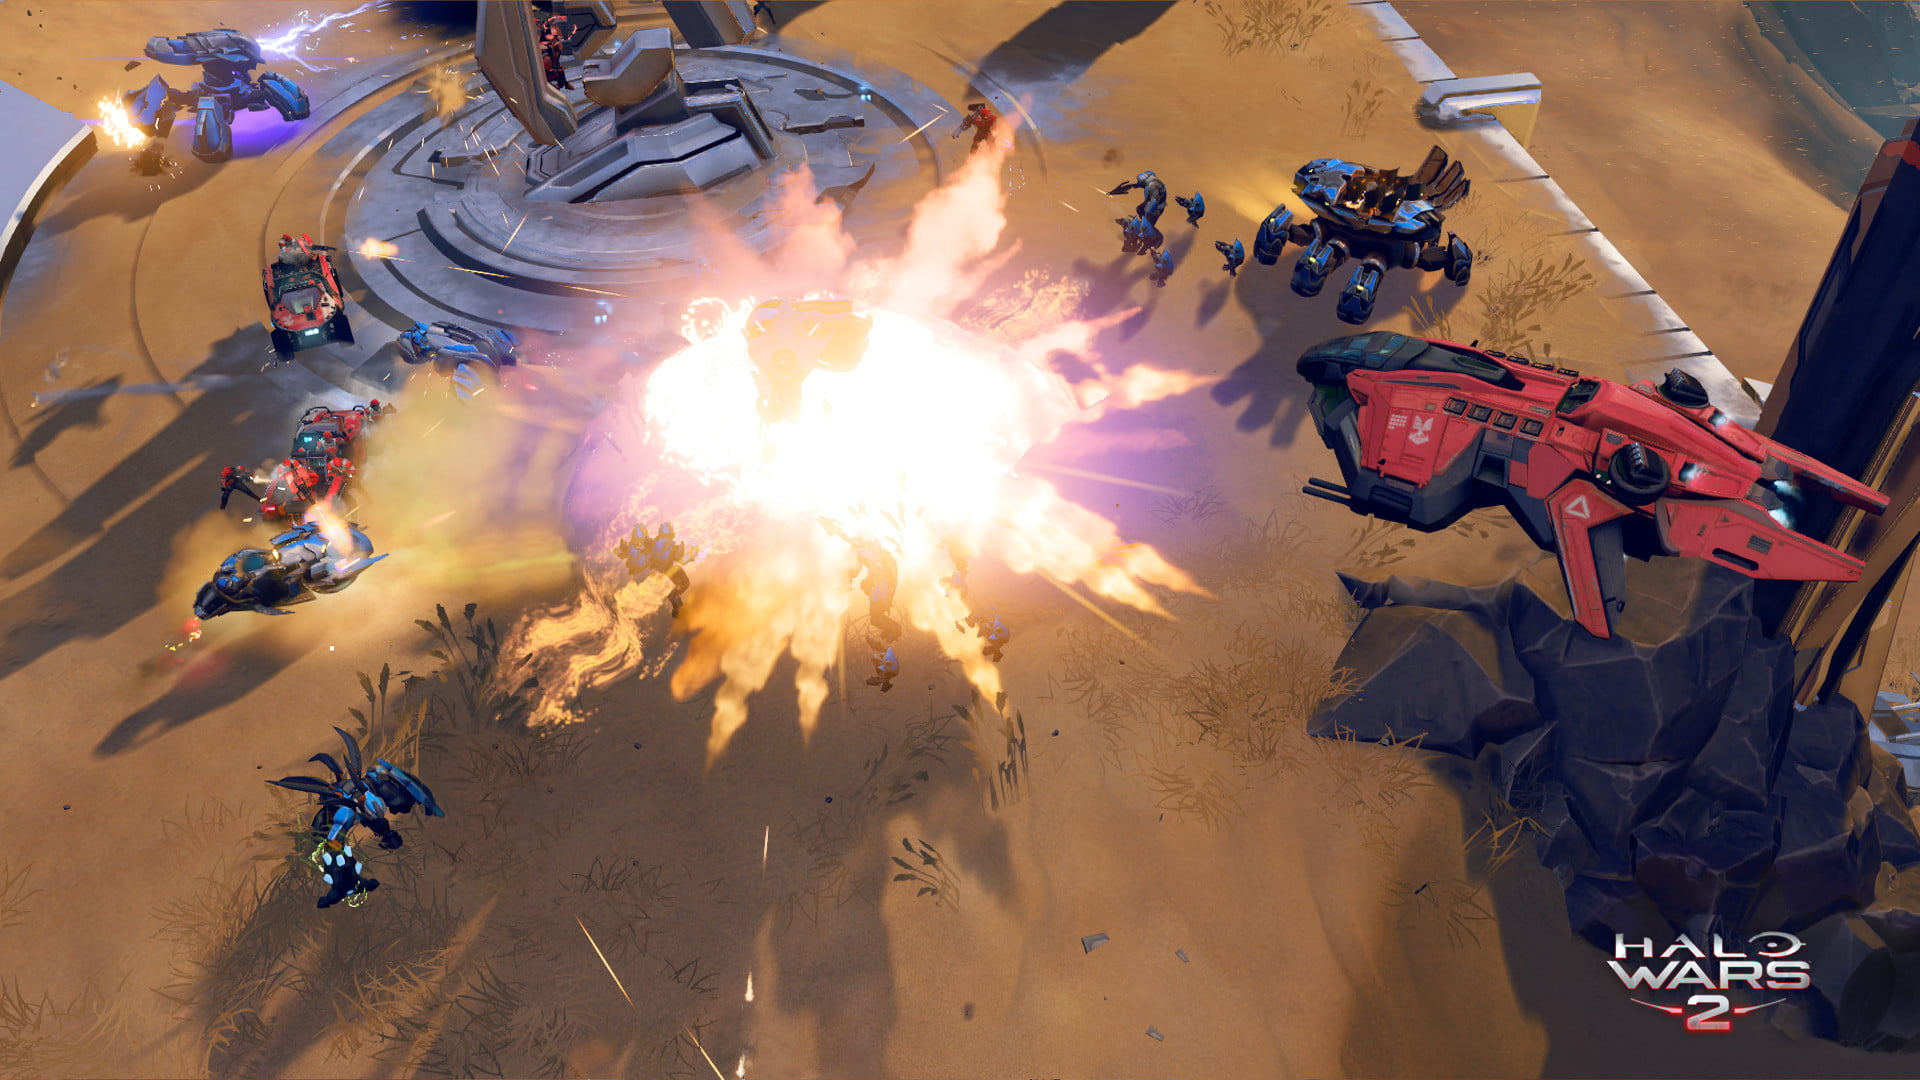 Halo Wars 2' Review | Digital Trends